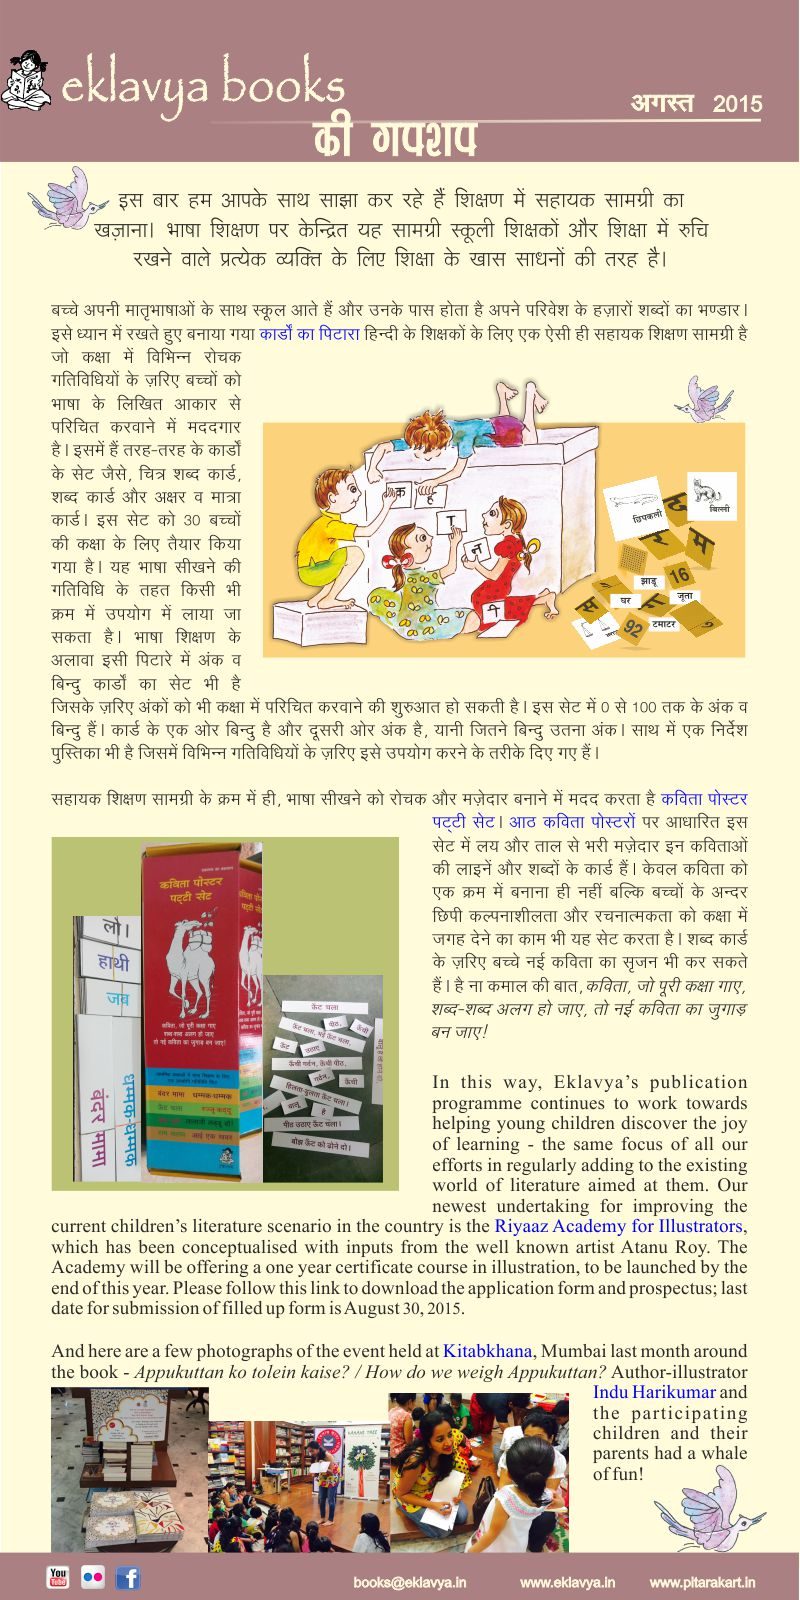 eklavyabooks ki gupshup - August 2015. Enable image for viewing newsletter